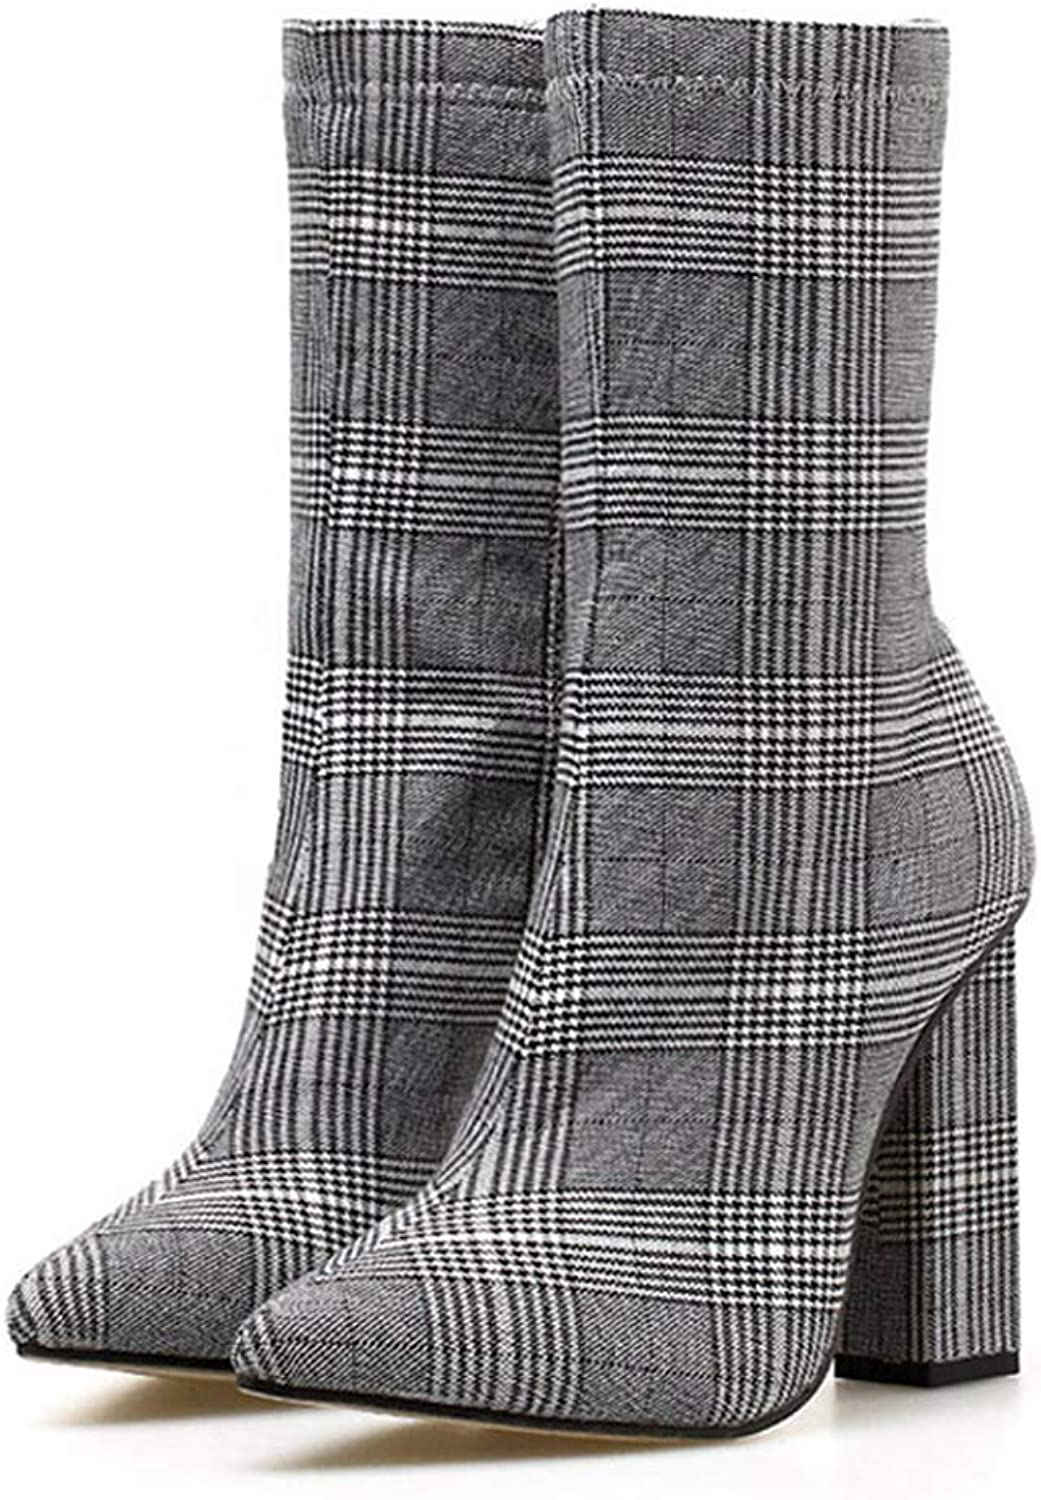 SENERY Women Boots Pointed Toe Ladies High Heels Boots Fashion Plaid Ankle Boots Martin Booties